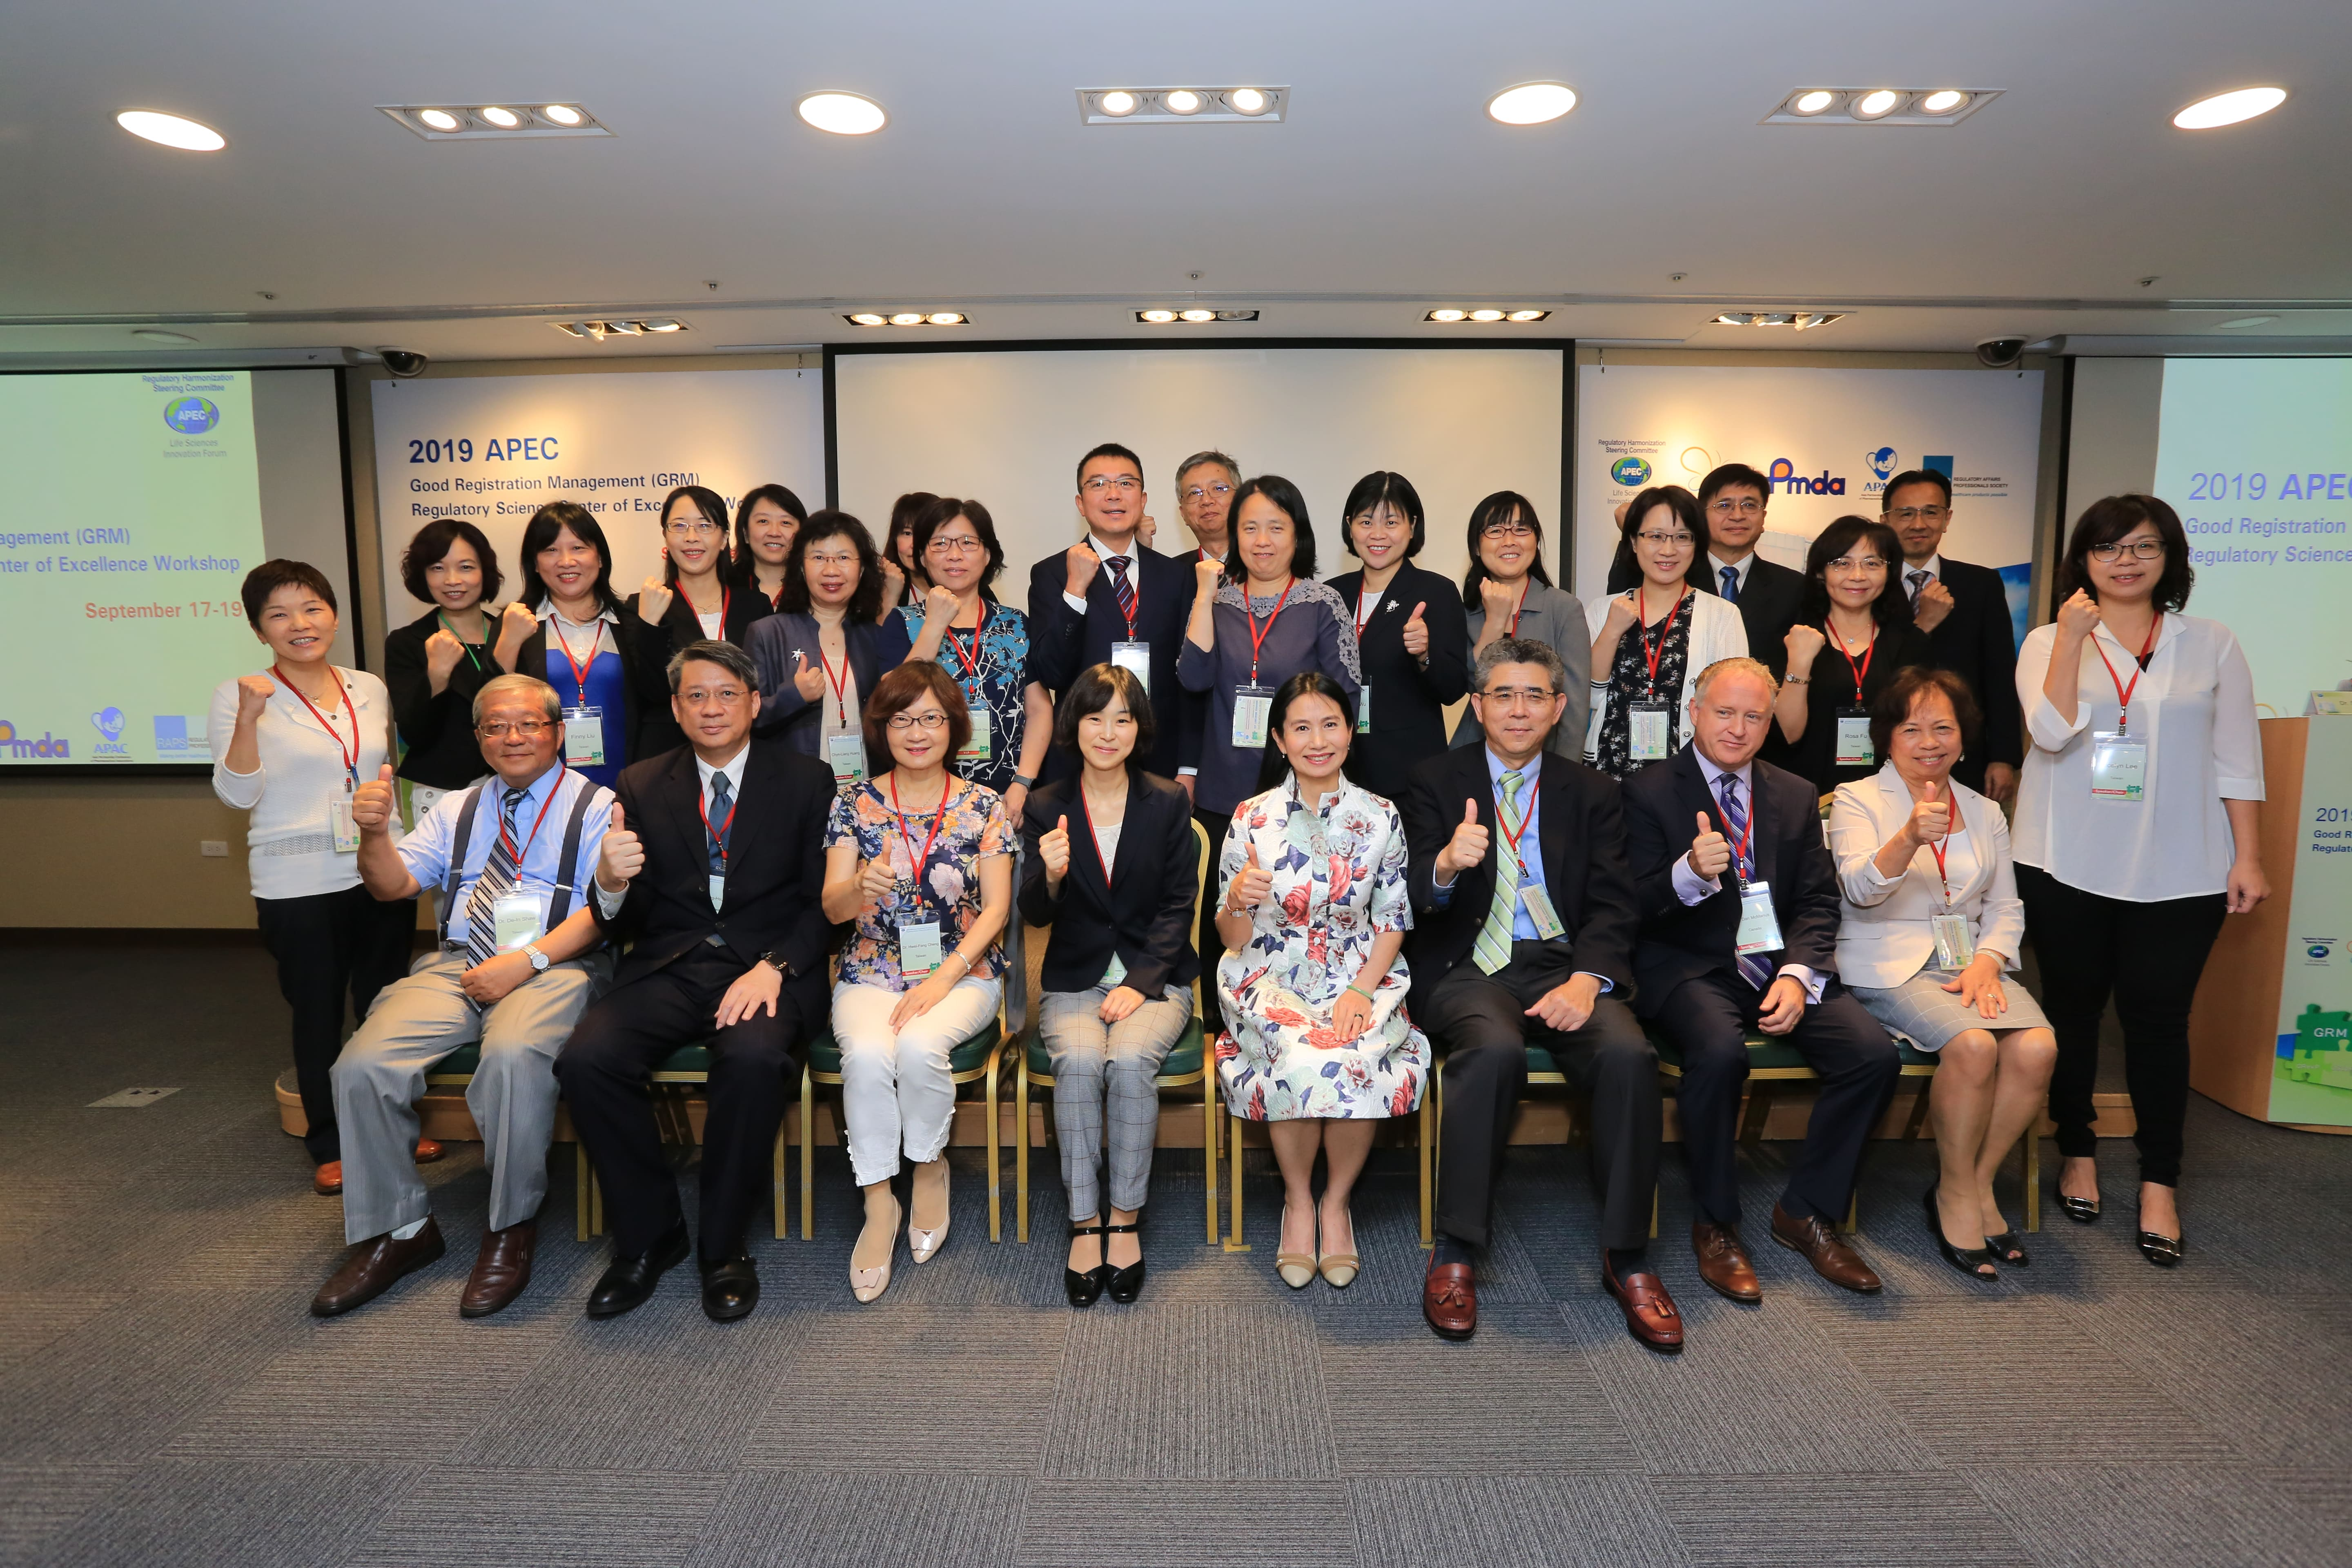 Taiwan FDA hosts 2019 APEC GRM CoE Workshop group 01